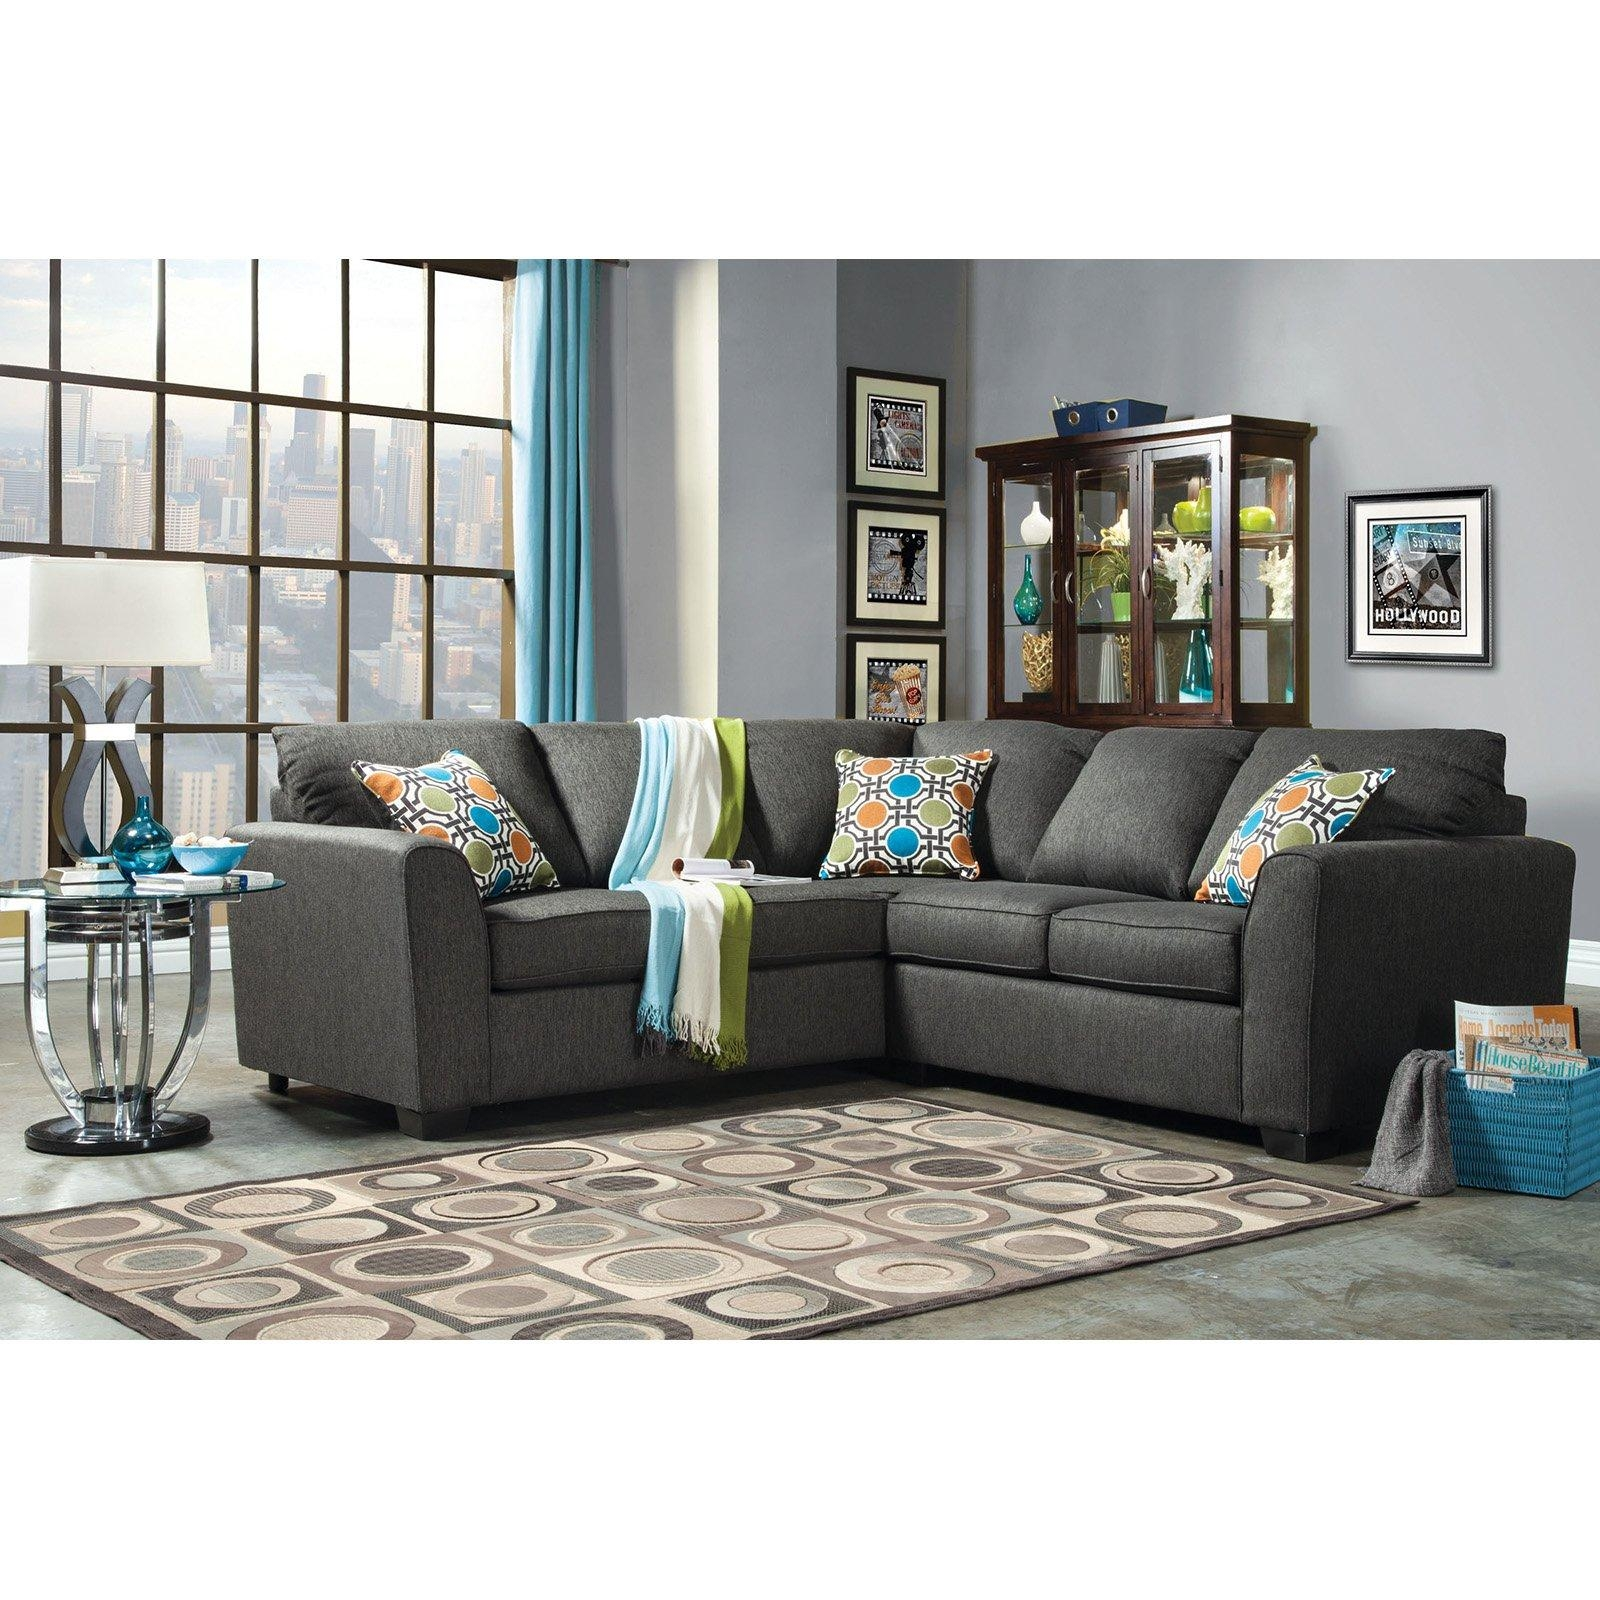 10 Spring Street Ashton Microfiber Sectional - Walmart regarding Small 2 Piece Sectional